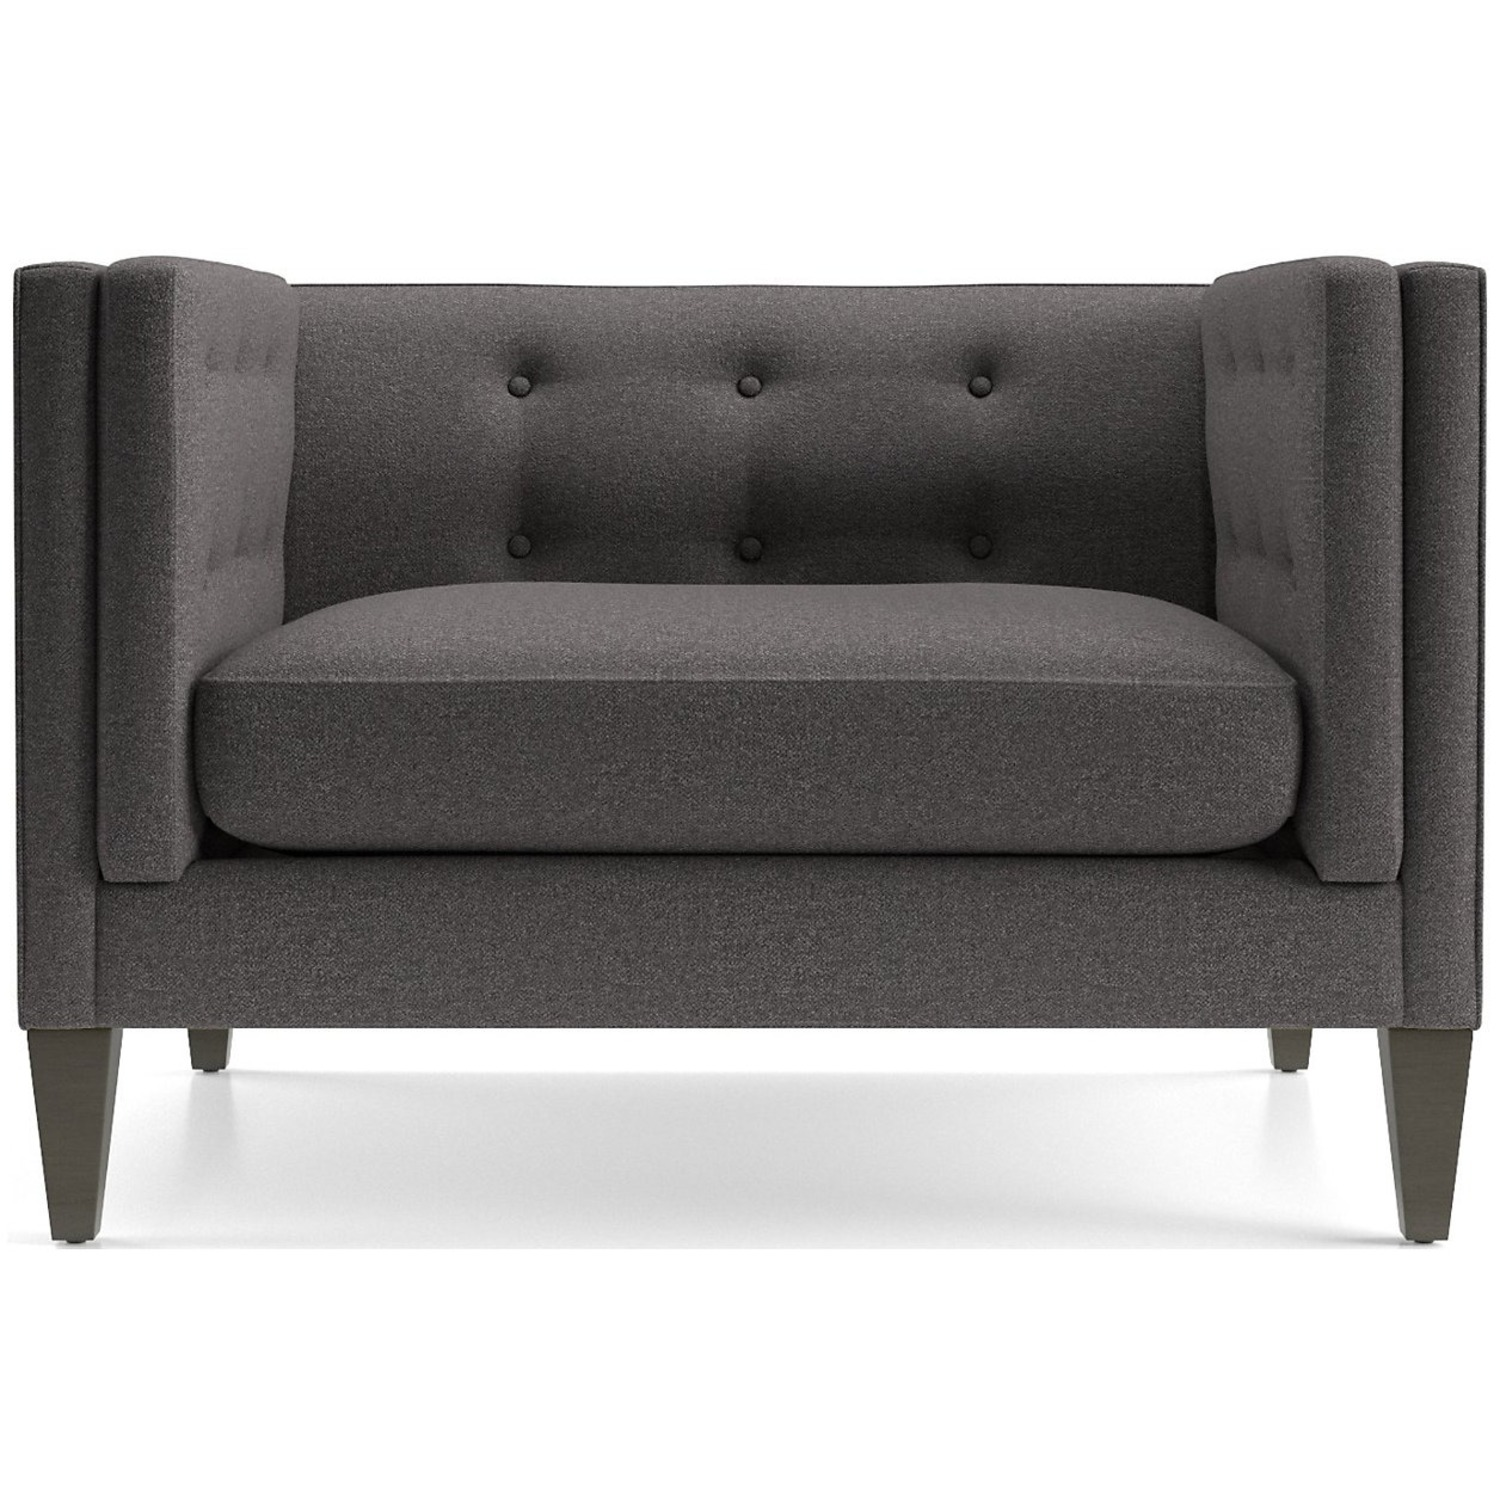 Crate & Barrel Tufted Chair - image-5